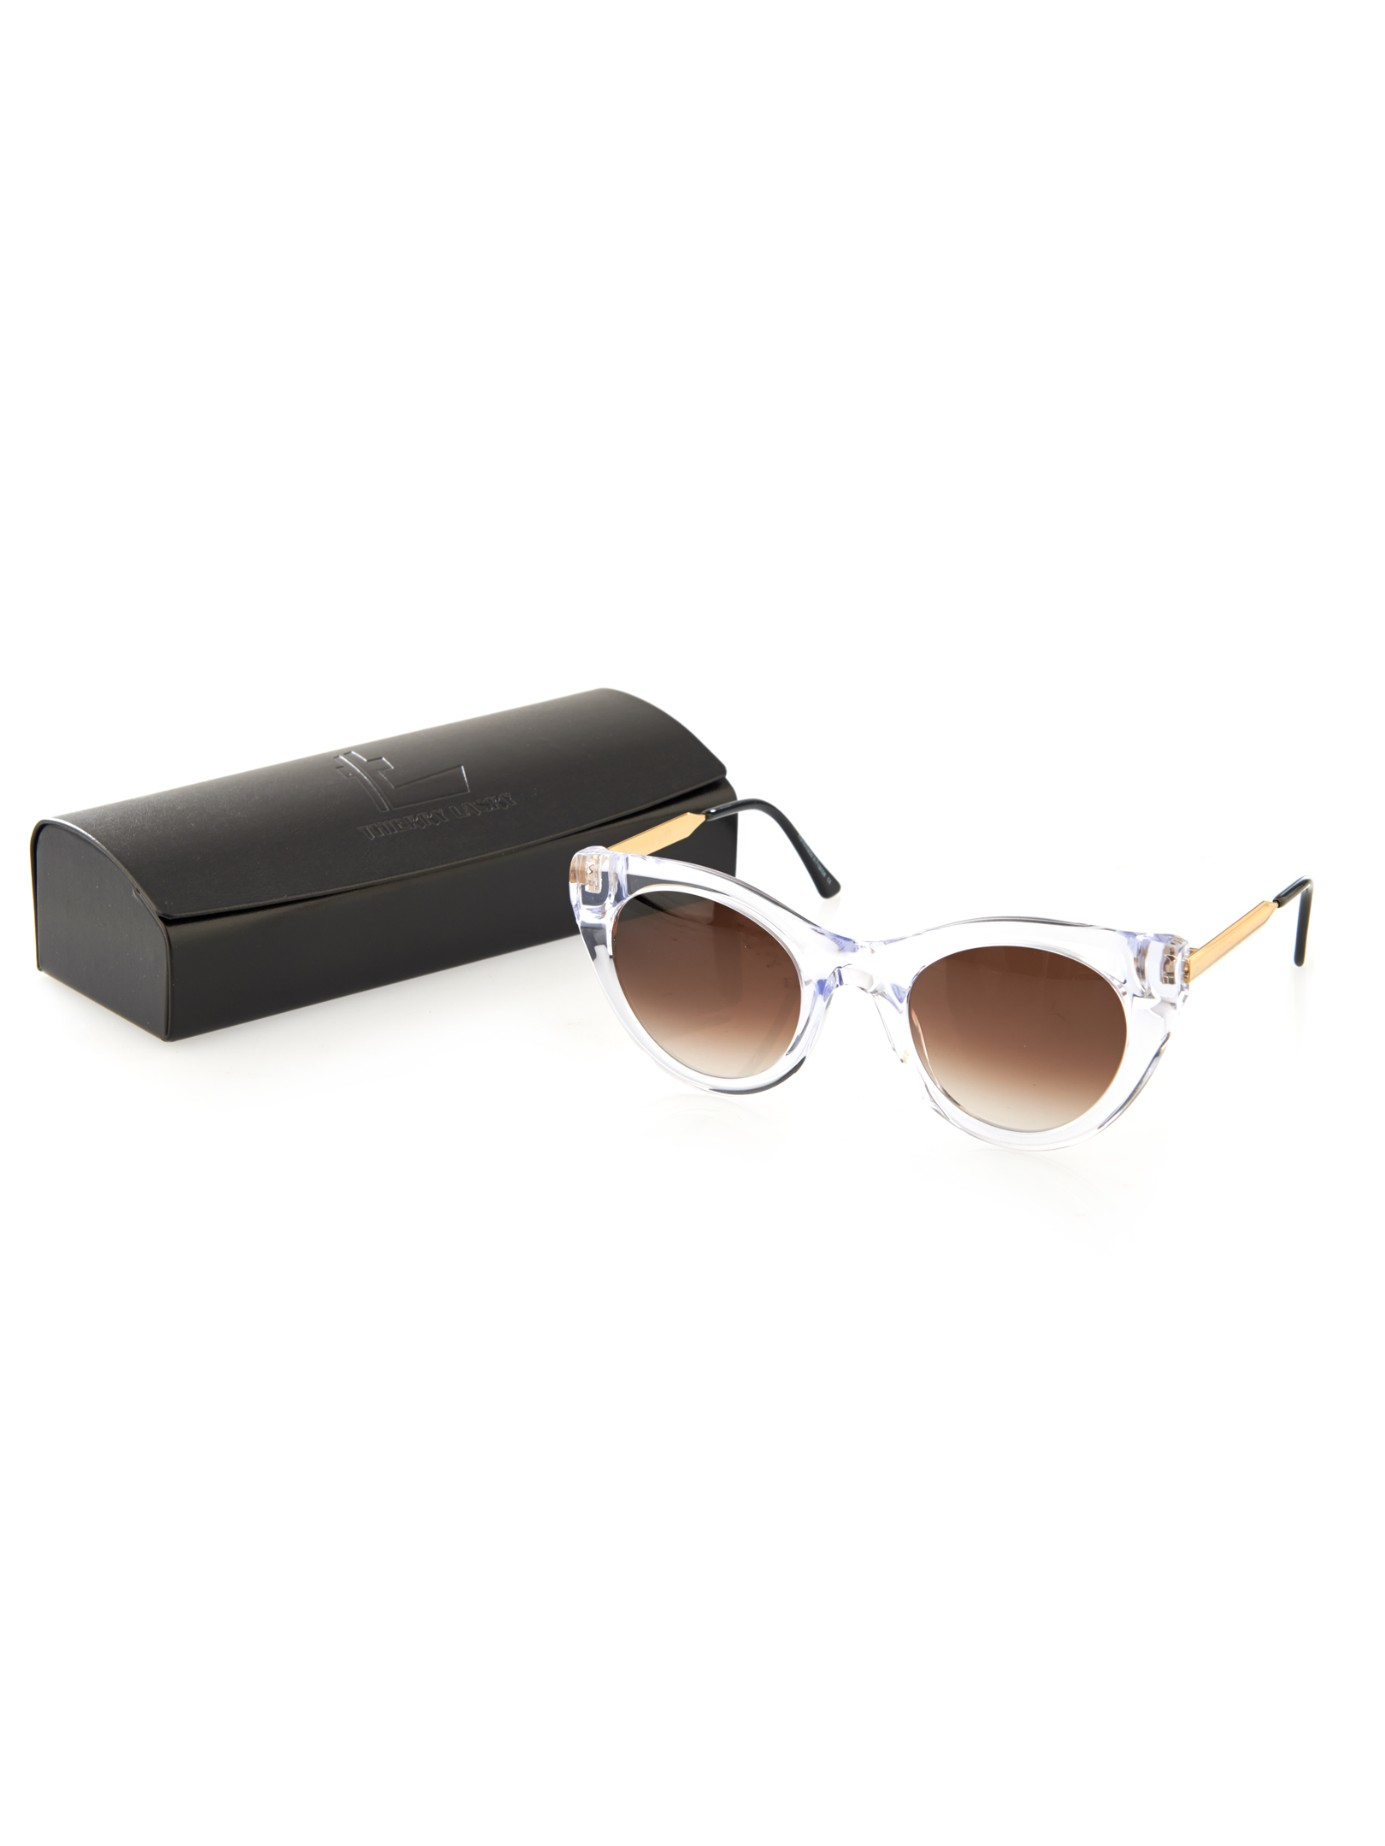 f3bd17a0ad Lyst - Thierry Lasry Perky Cat-eye Sunglasses